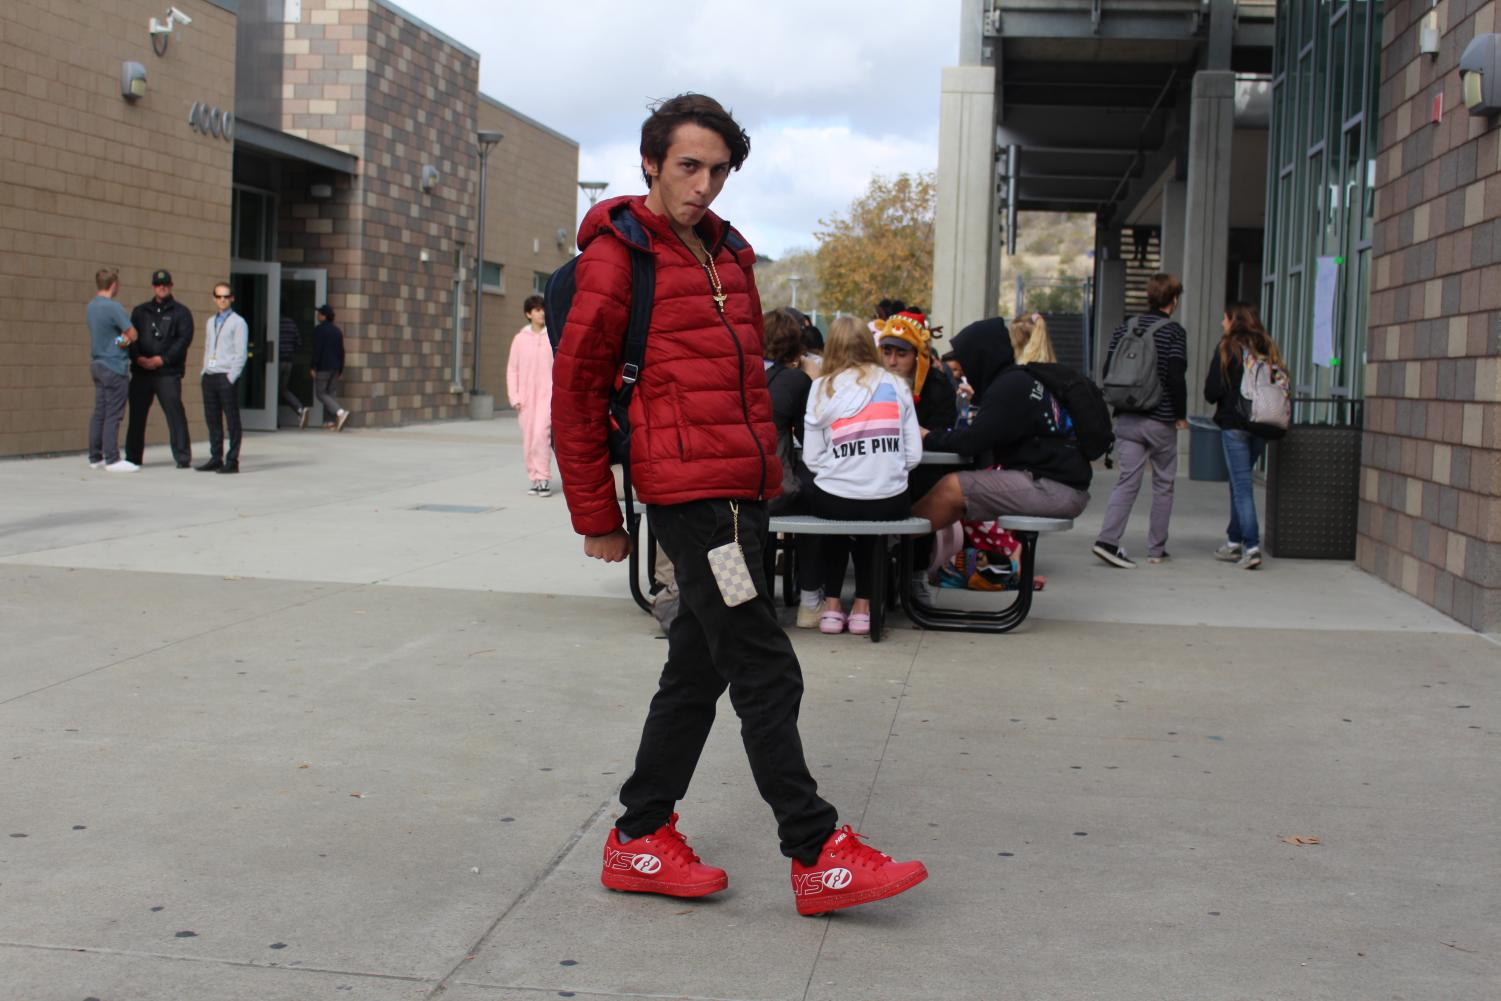 Senior+Preston+Acevedo+strikes+a+pose+as+he+glides+through+the+academic+mall+on+his+candy+cane+red+Heelys.+Thursday%E2%80%99s+spirit+day+was+Candy+Cane+day+where+students+showed+their+school+spirit+by+dawning+as+much+red+as+they+could.+